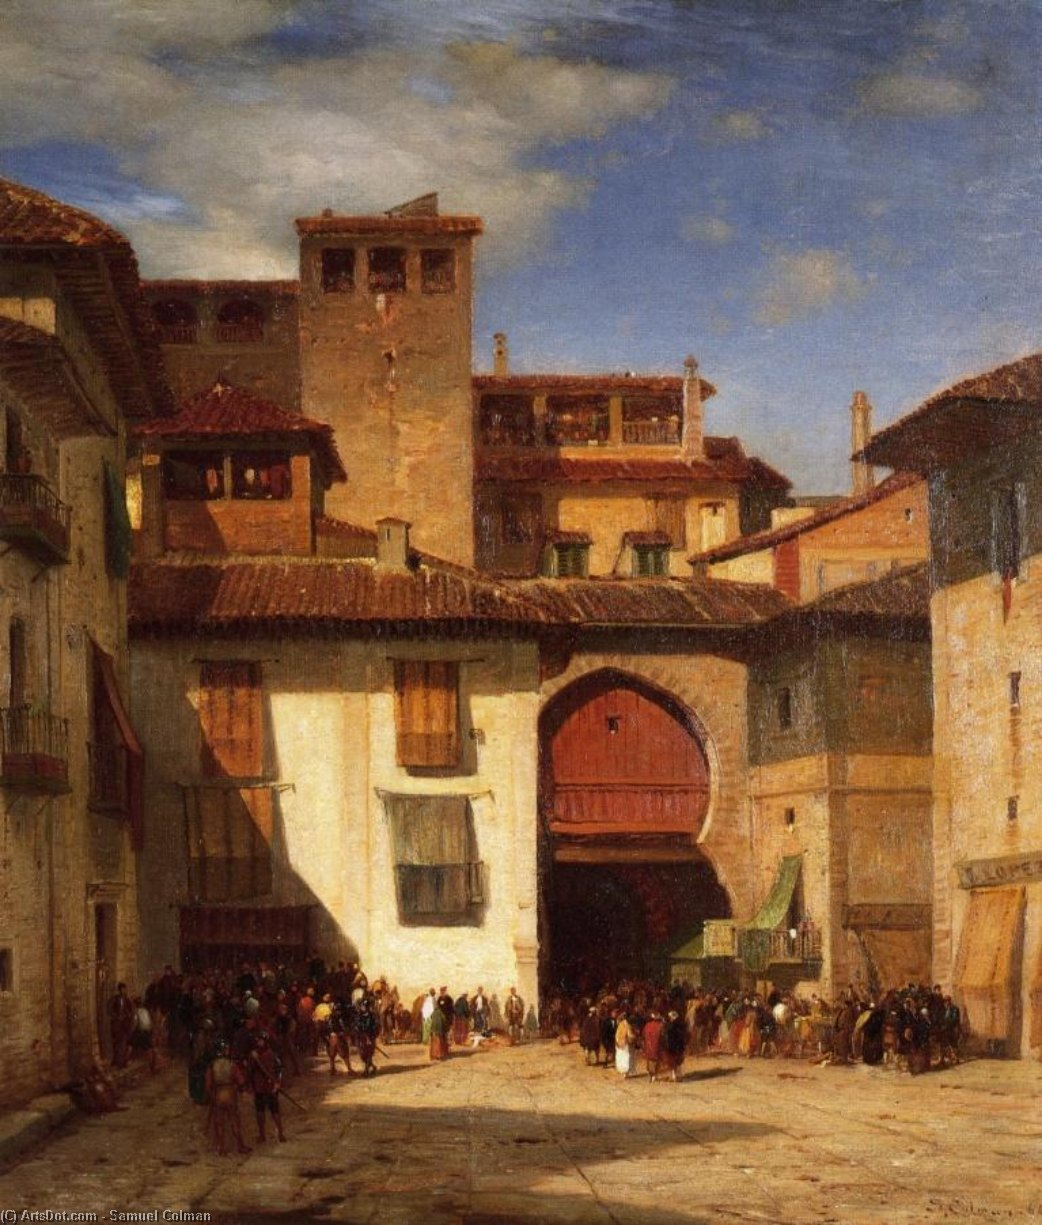 Spanish Market Place, Oil On Canvas by Samuel Colman (1832-1920, United Kingdom)